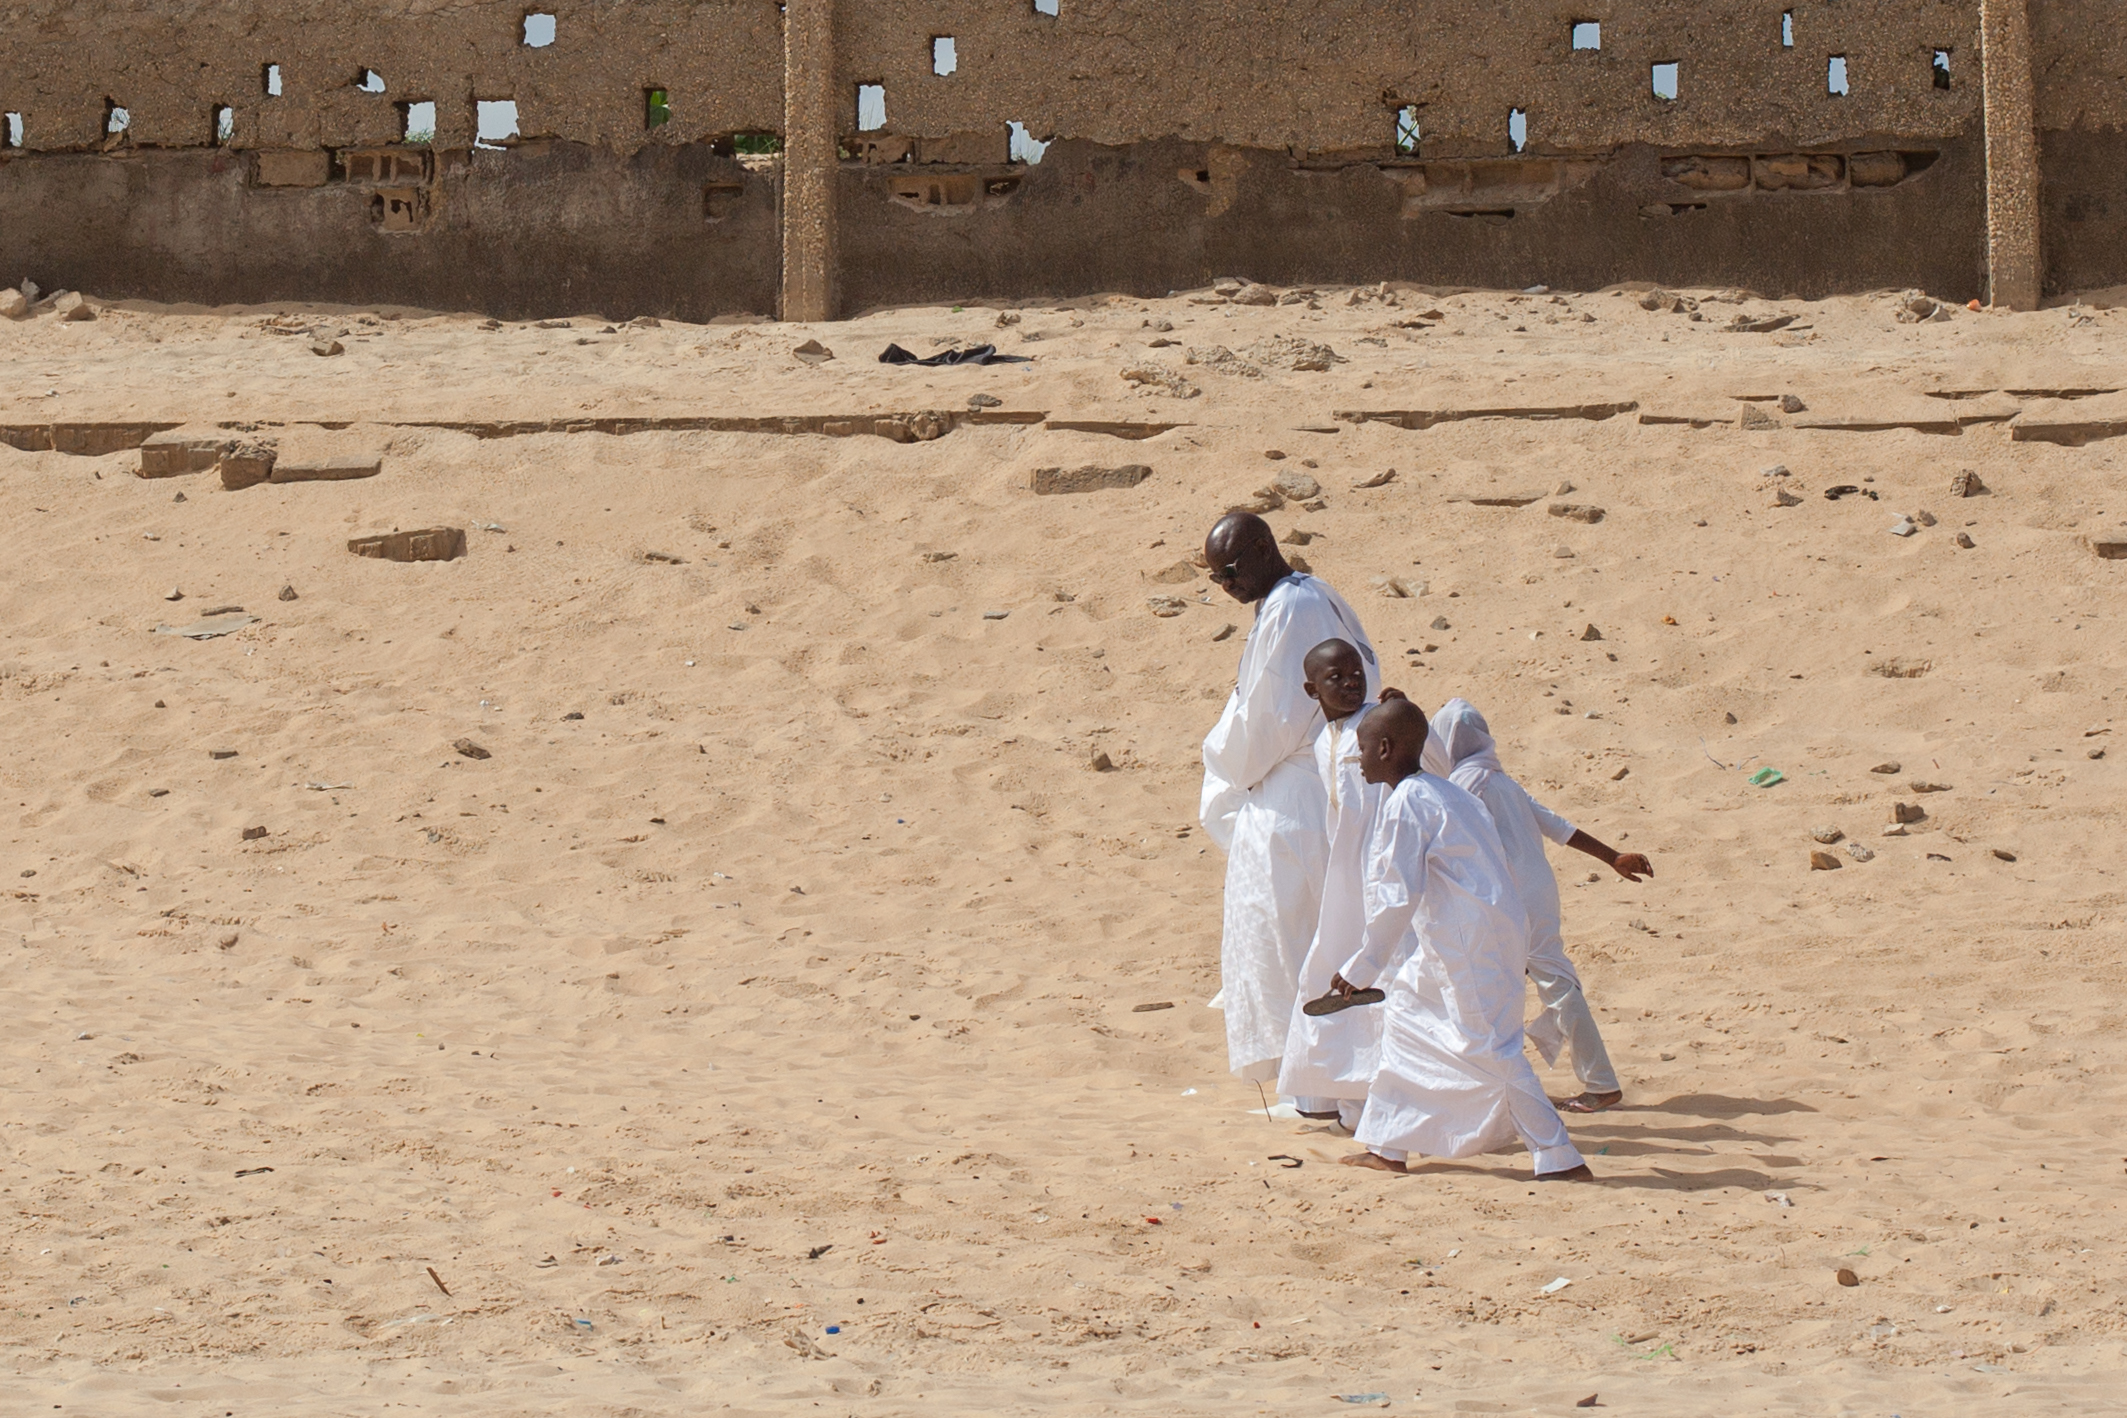 A family returning home after Sunday service at the mosque in Dakar.